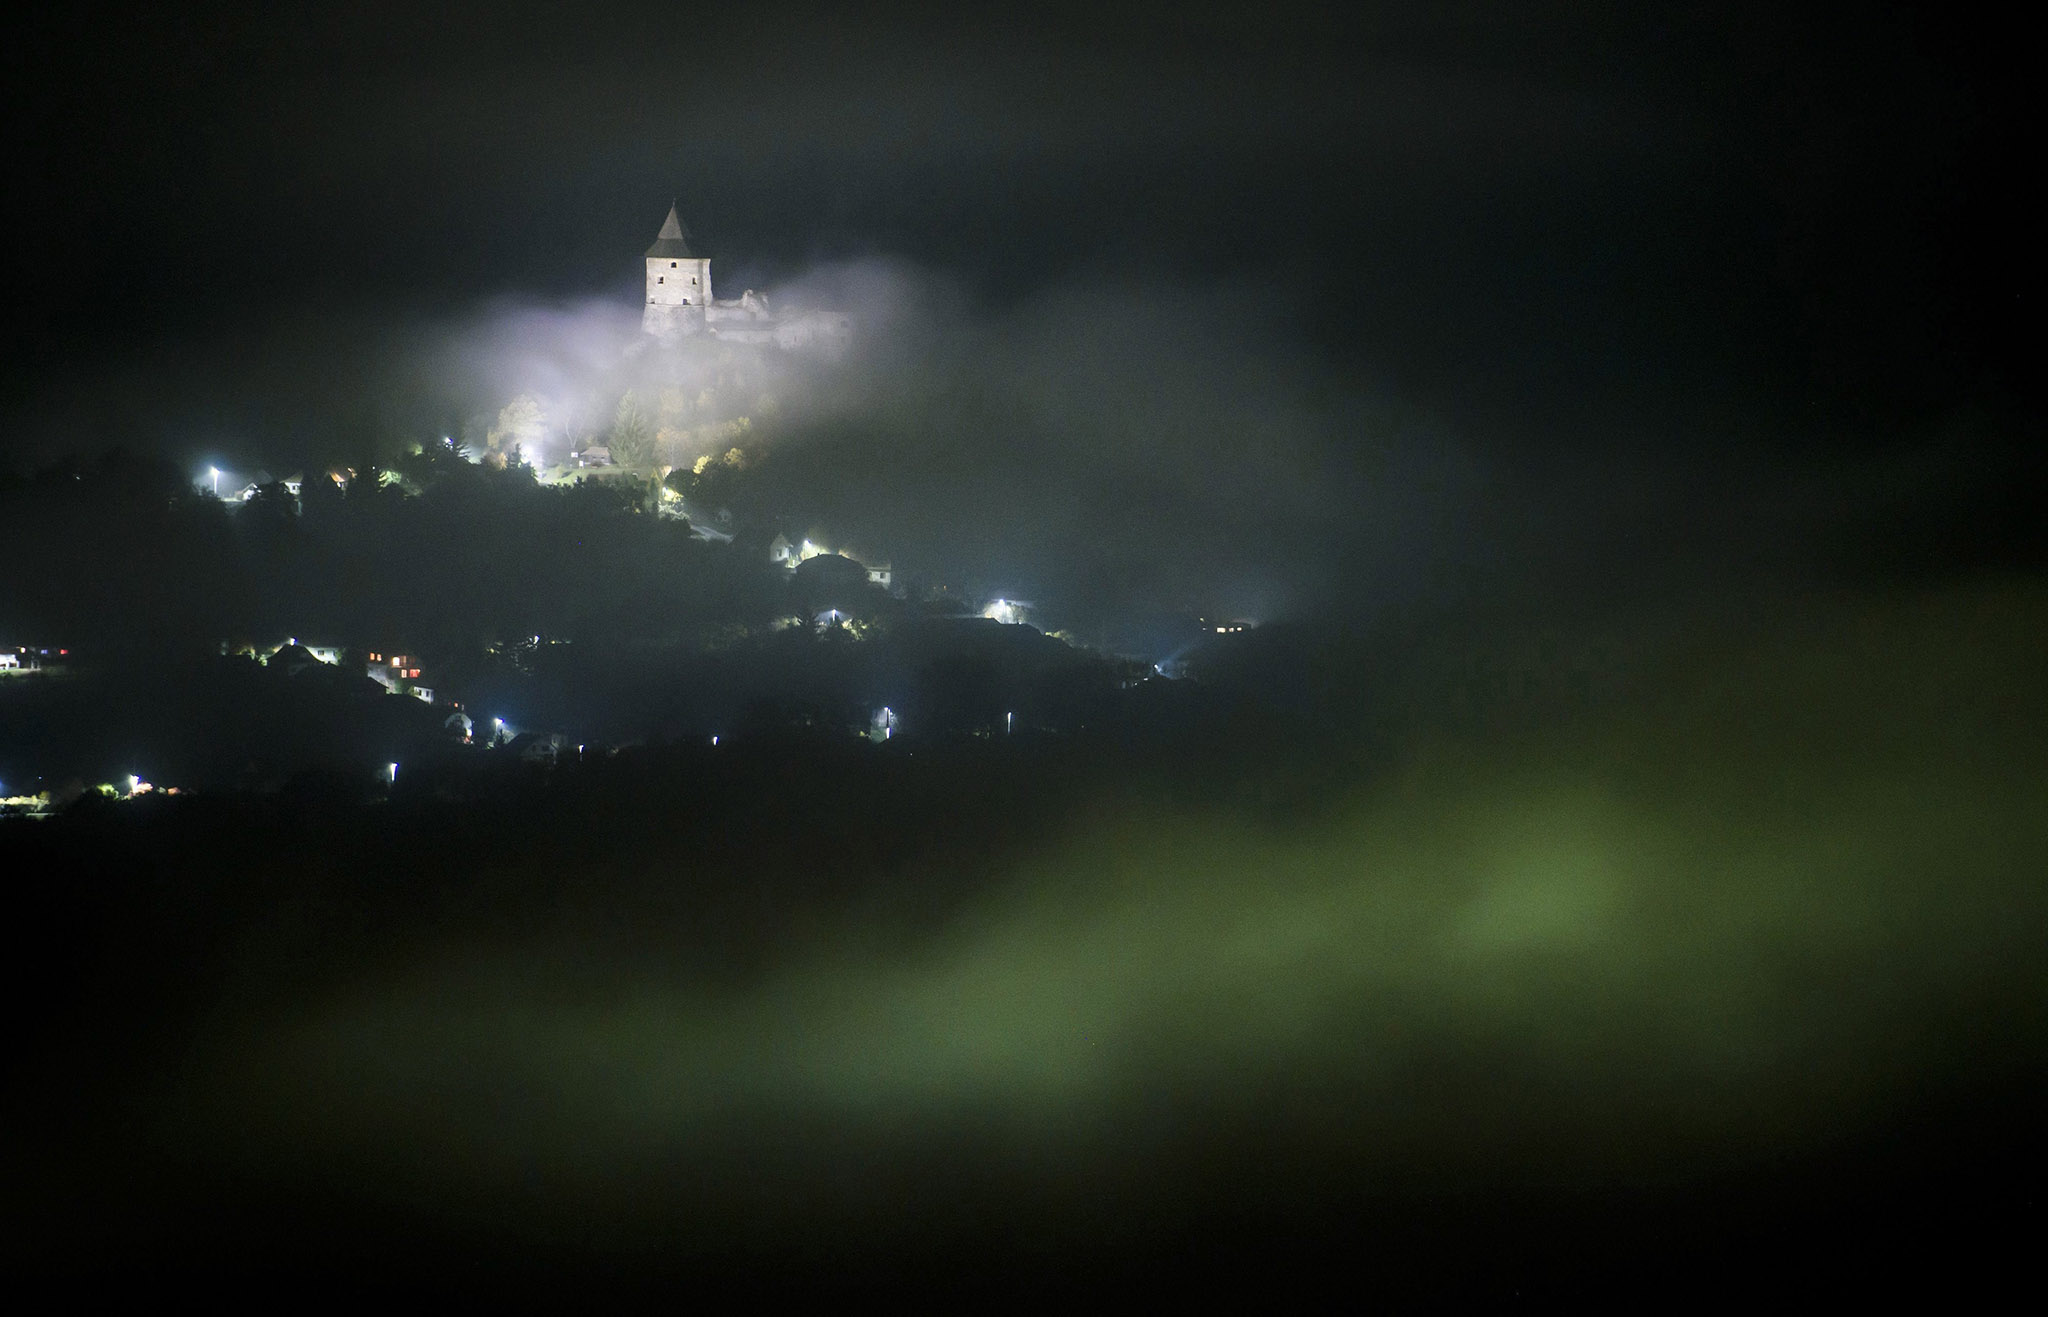 Clouds float above the Castle of Somosko near Salgotarjan, 109 kms northeast of Budapest, Hungary, Tuesday, lOct. 25, 2016. (Peter Komka/MTI via AP)